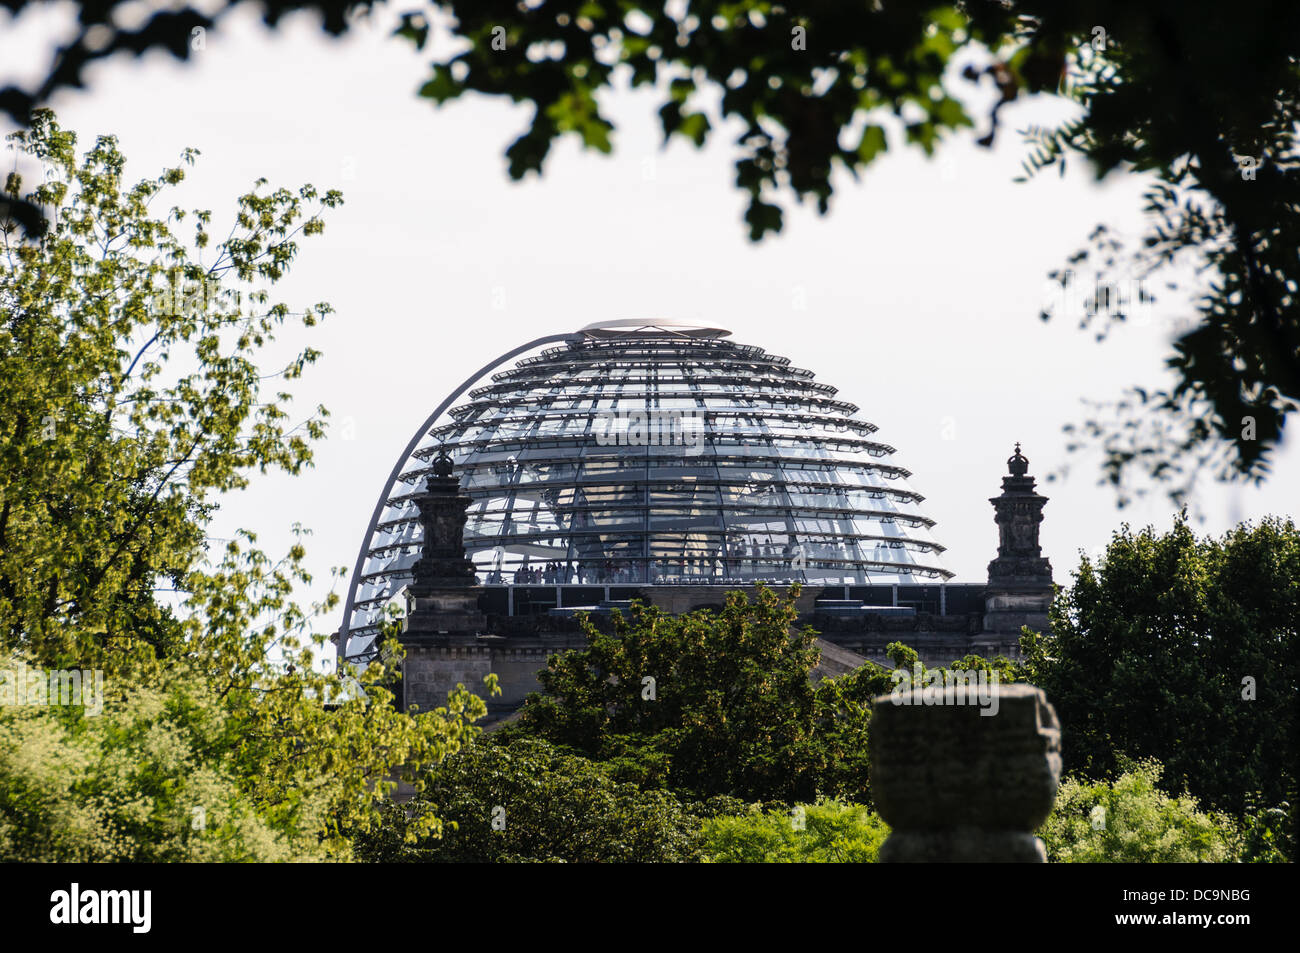 The Reichstag Dome, designed by the architect Sir Norman Foster, framed by trees - Berlin Germany Stock Photo